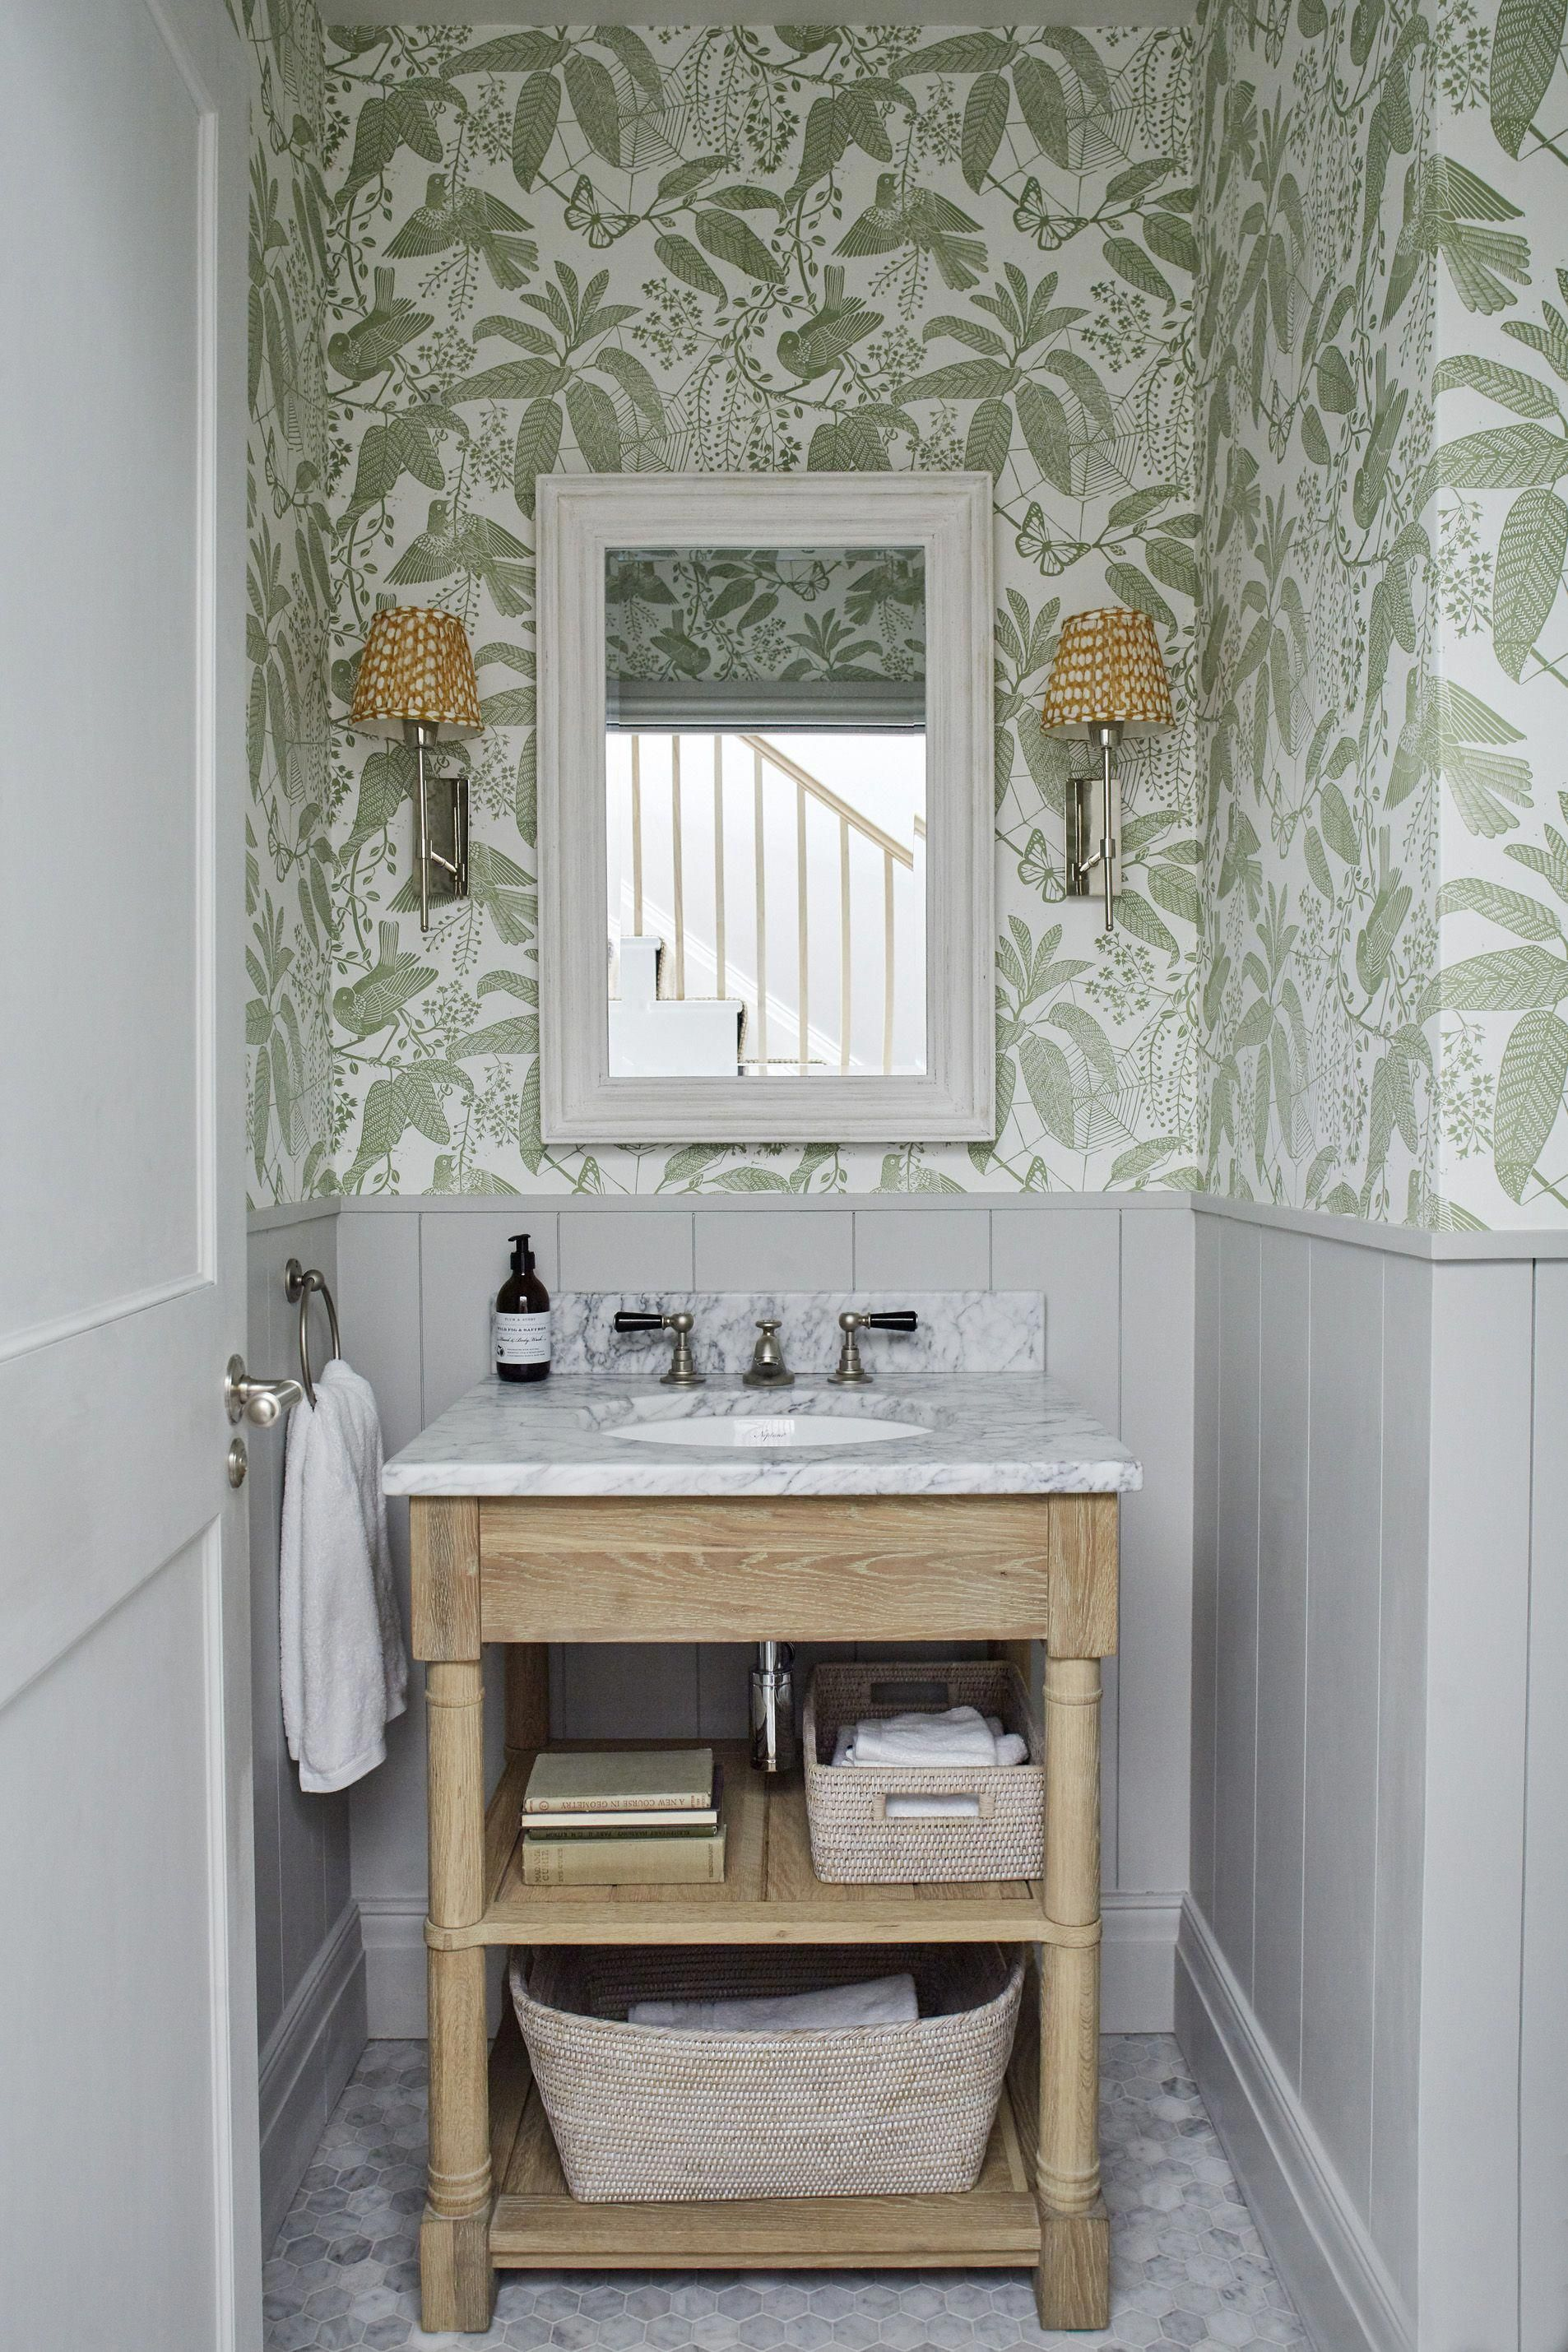 Sims Hilditch Parsons Green Townhouse Bathroom With Half Wall Panelling And Wallpaper Bathroominspo Townhouse Bathroom Bathroom Decor Bathroom Interior